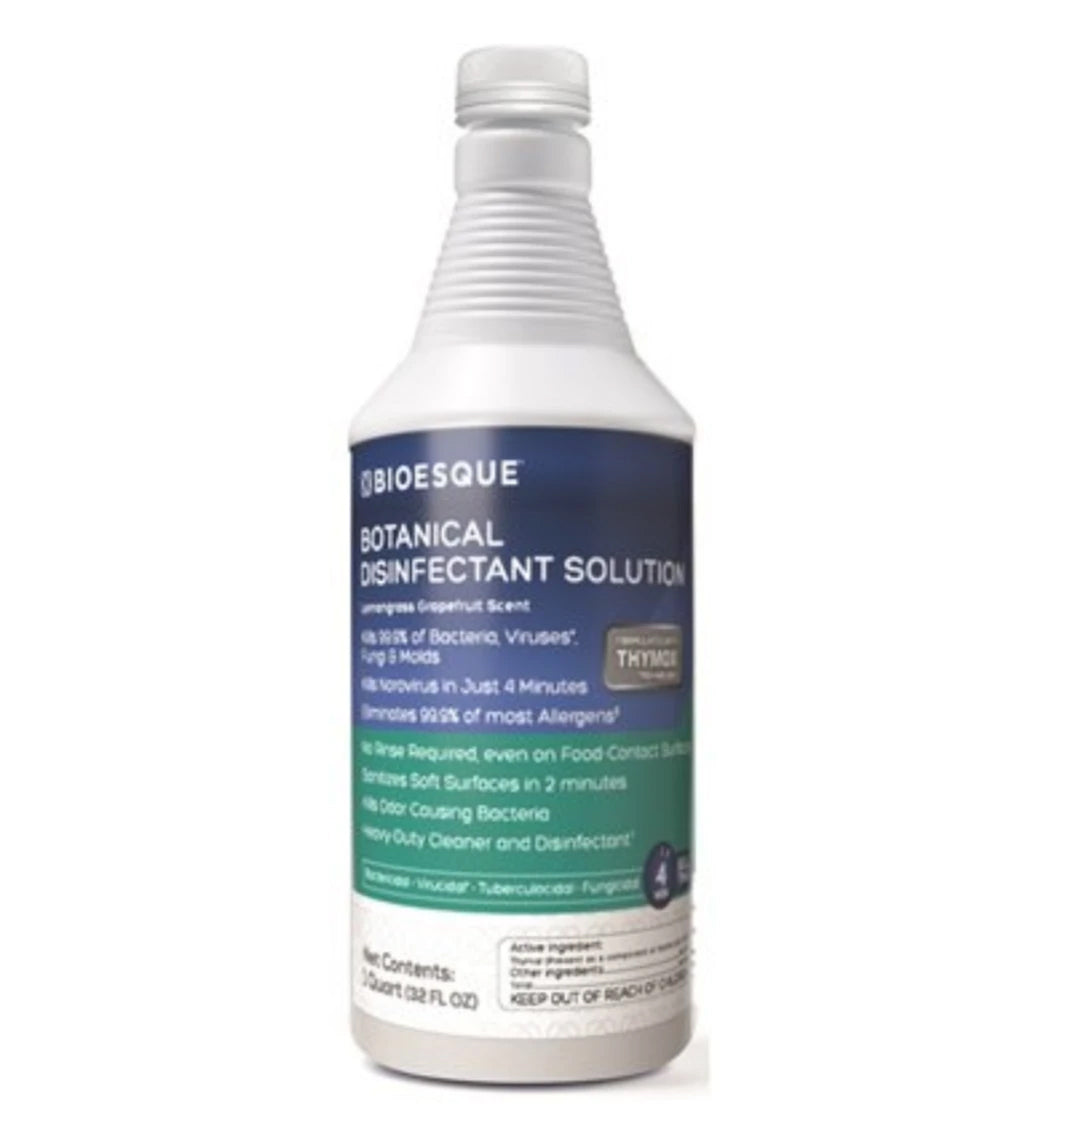 Bioesque - 1 Qt Disinfectant Solution